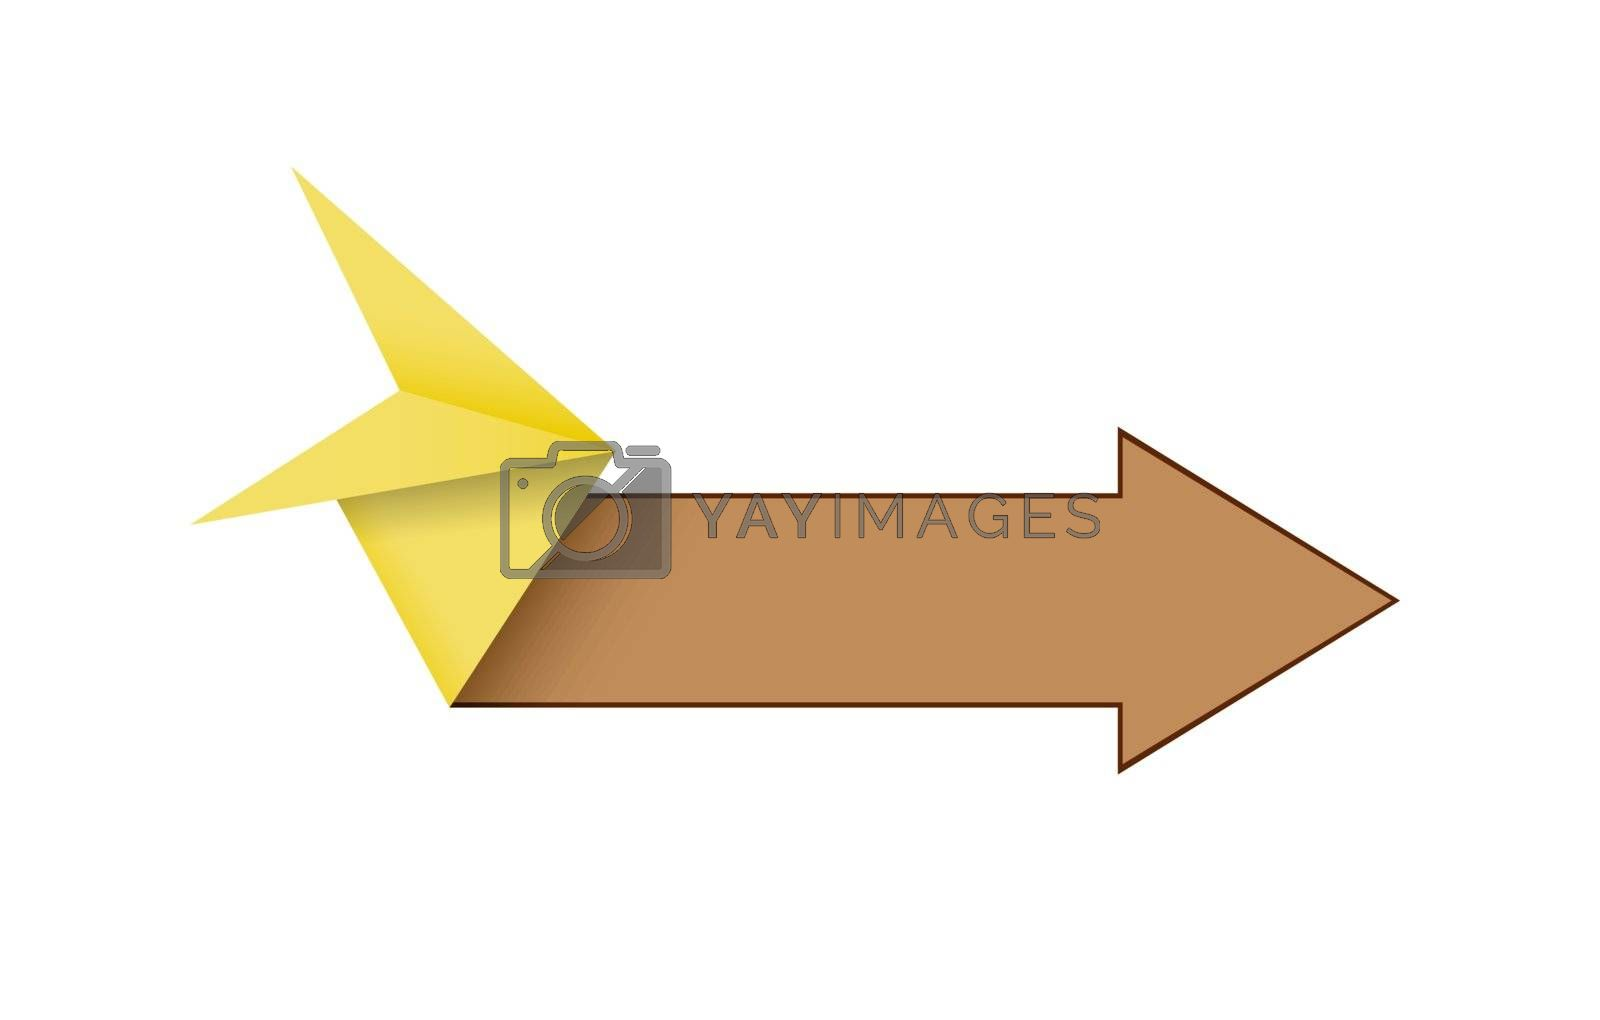 The blank origami style arrow in yellow and brown color